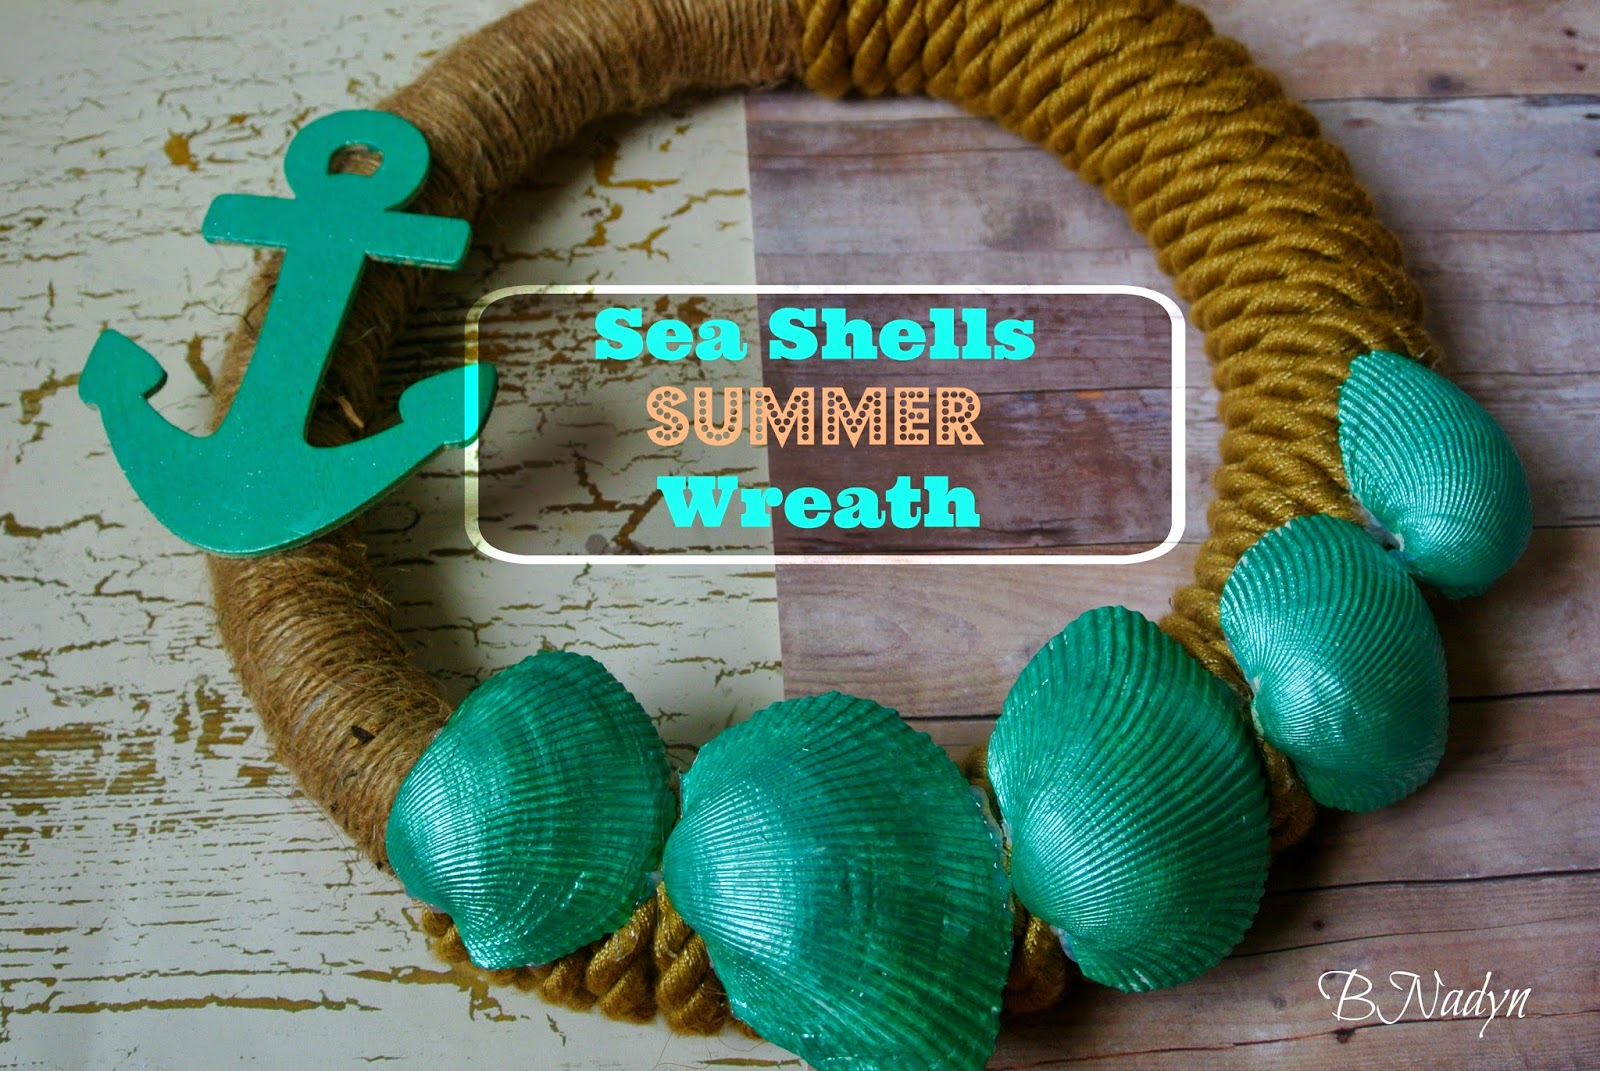 Sea shells decor, summer wreath, diy tutuorial wreath